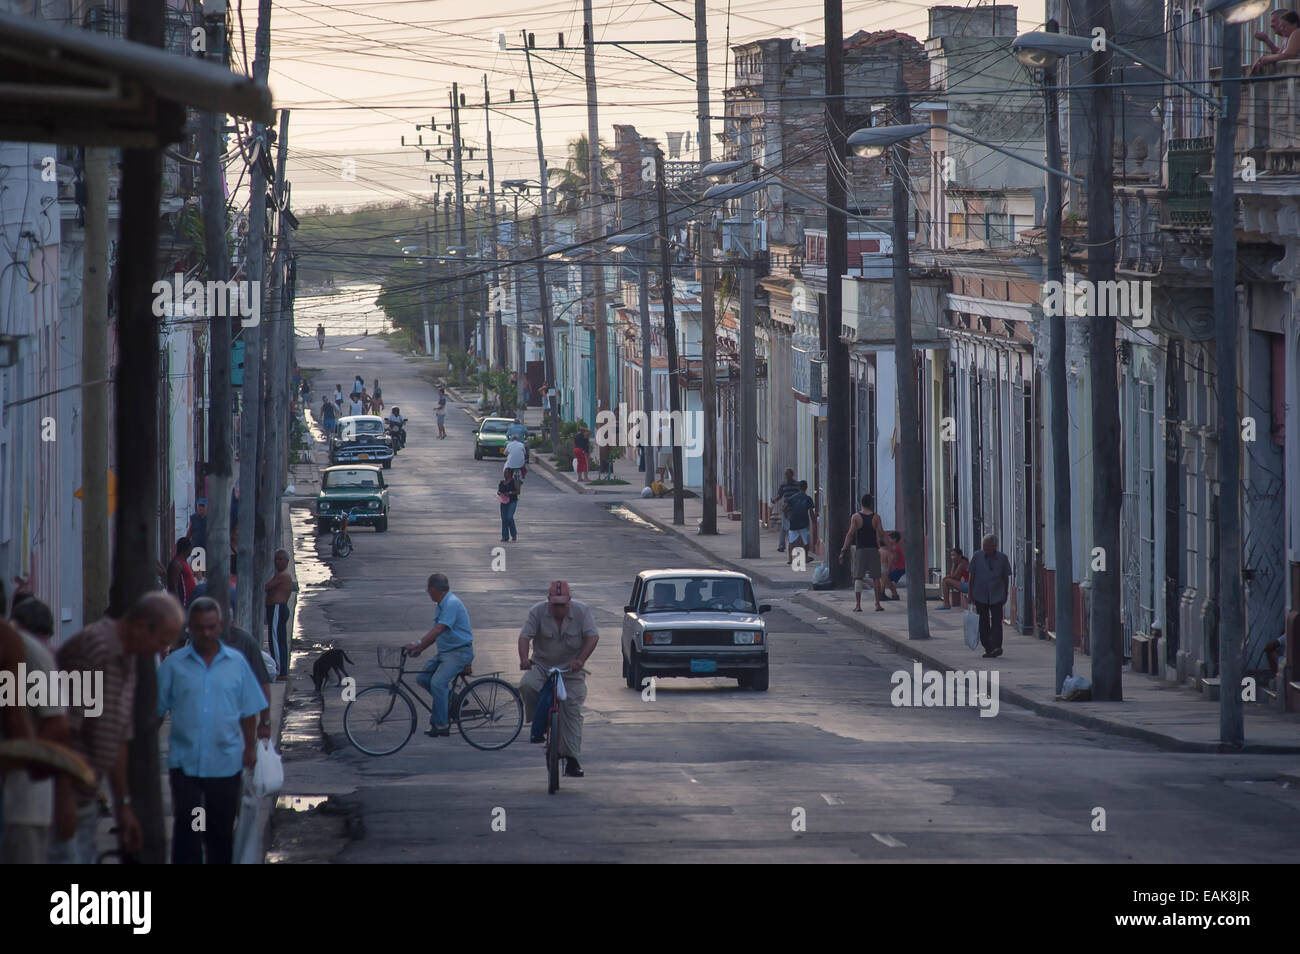 Street scene in the historic town centre of Cienfuegos, Cienfuegos, Cienfuegos Province, Cuba Stock Photo